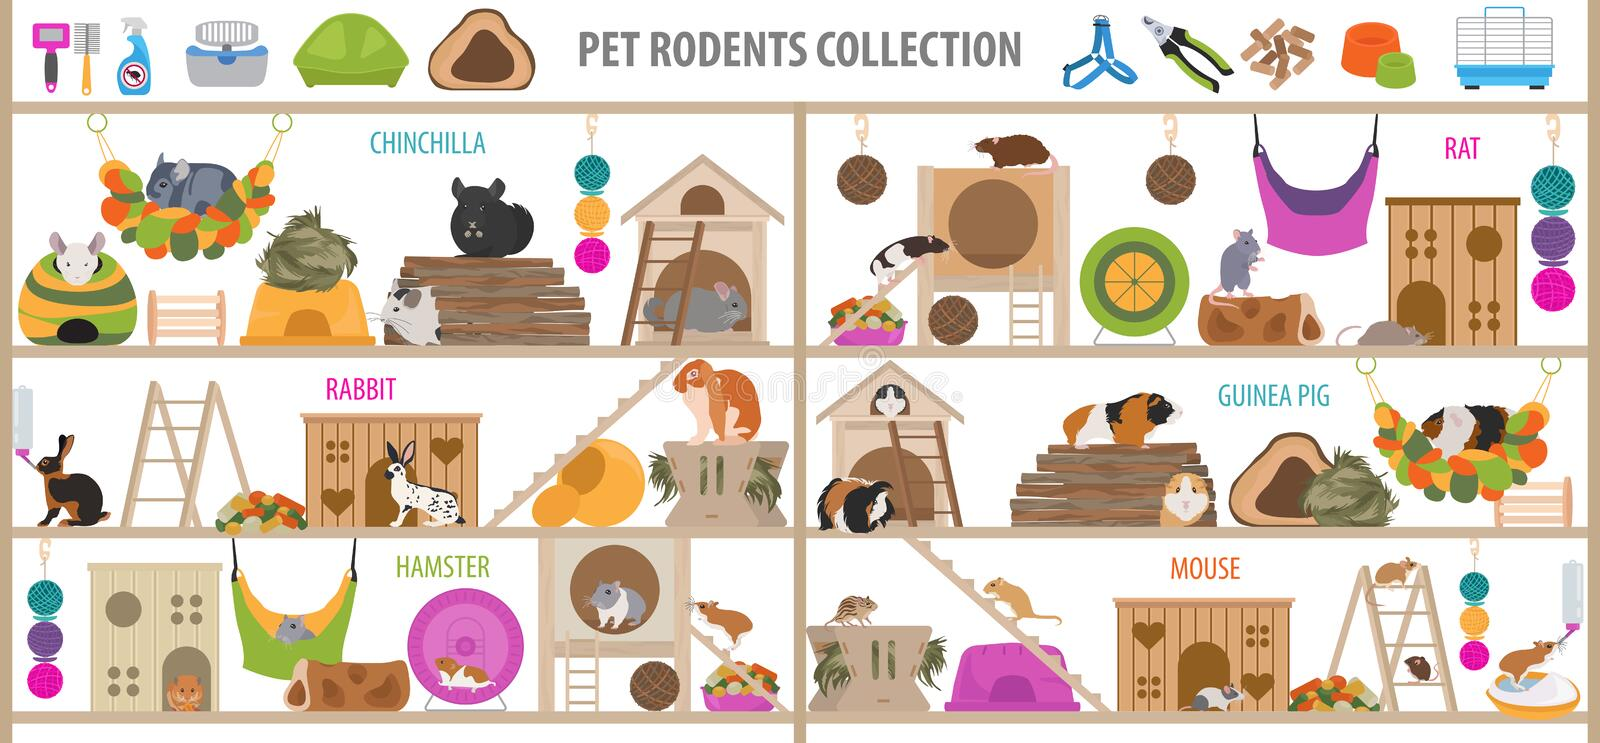 Pet rodents home accessories icon set flat style isolated on white. Healthcare collection. Create own infographic about guinea pig vector illustration